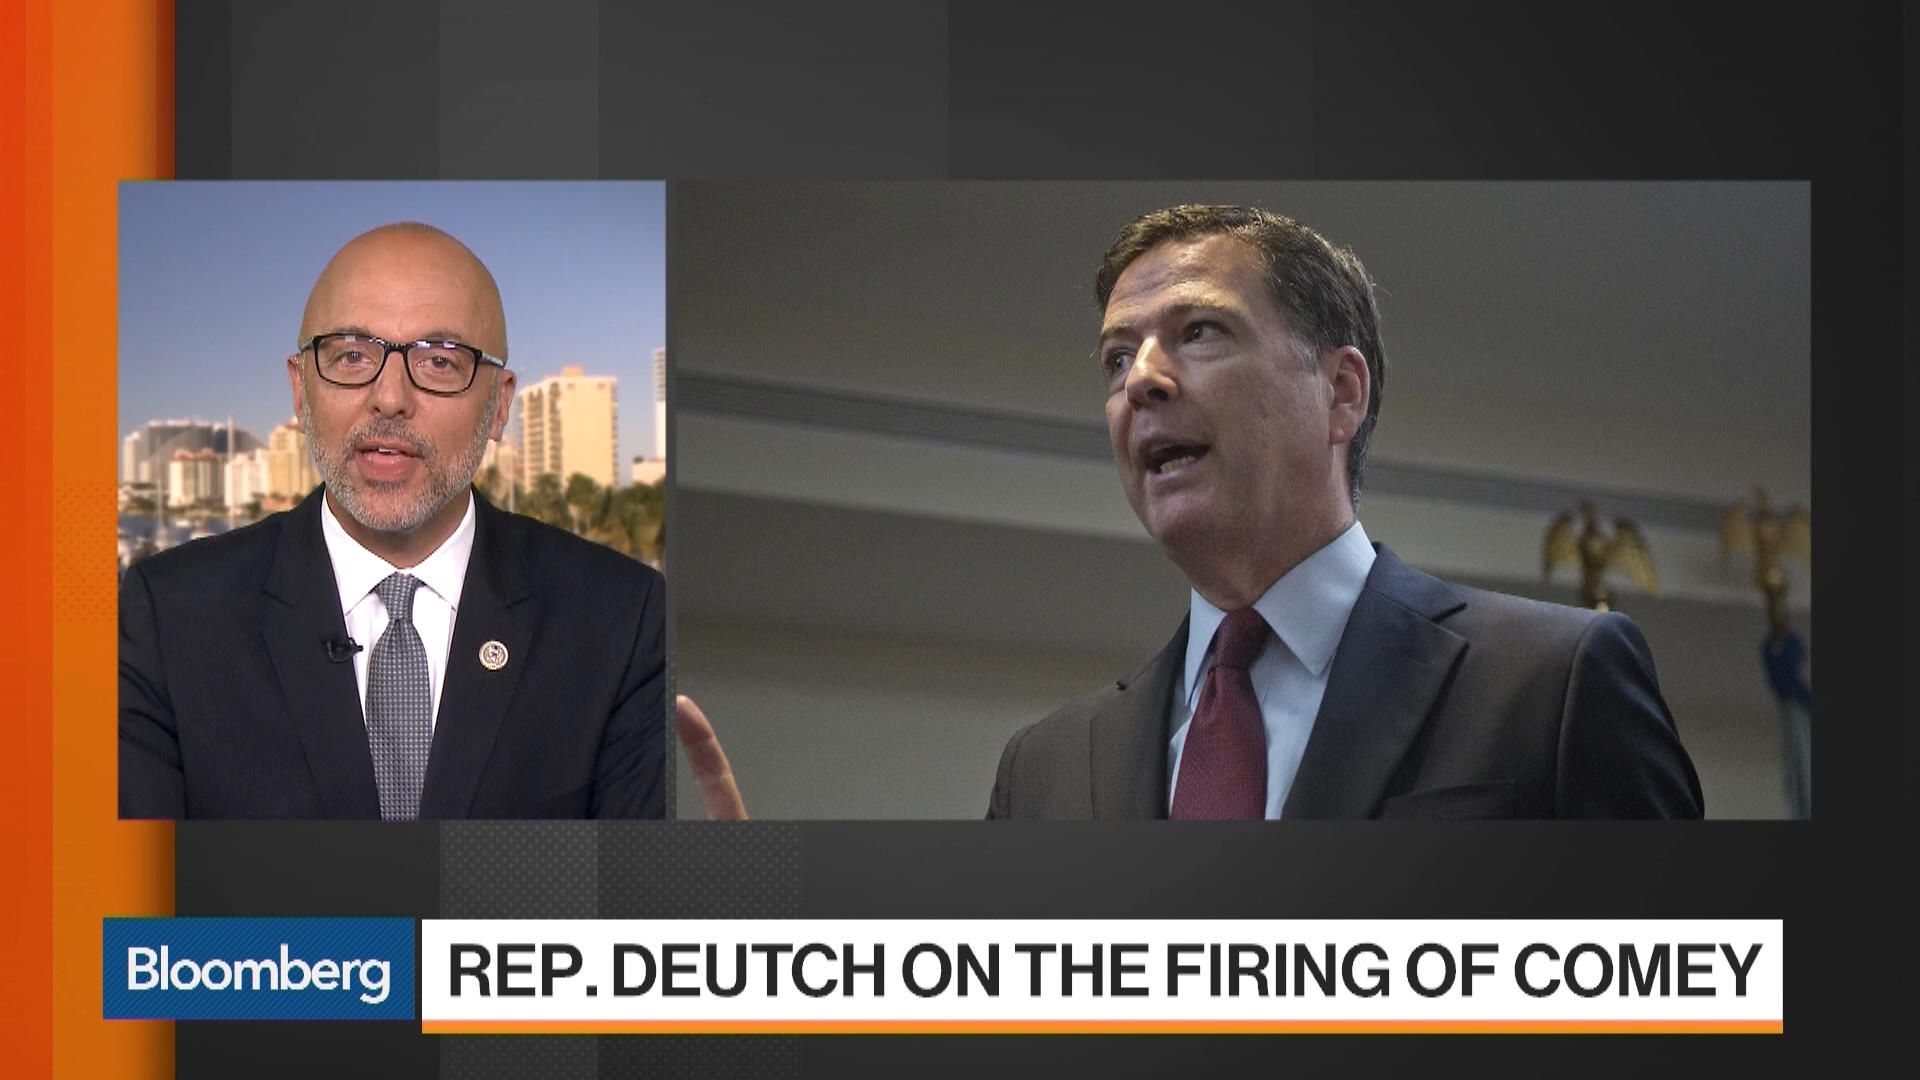 Ted-Deutch-on-television.jpg